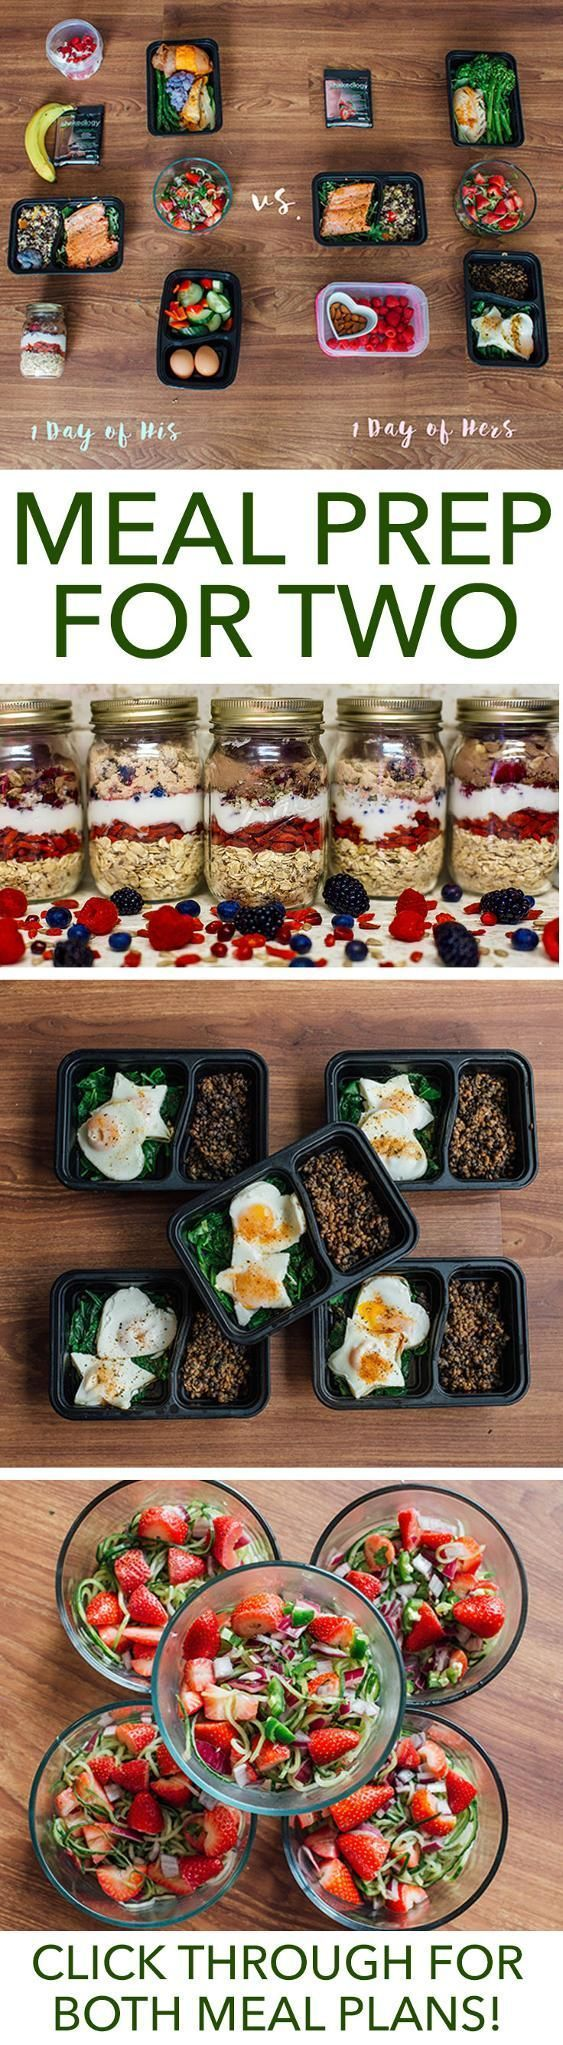 Meal prep is more fun when you have a partner in the kitchen. Make this week extra special with this meal prep plan for two. // meal prep mondays // meal planning // healthy foods // couples // relationships // valentine's day // beachbody | http://BeachbodyBlog.com